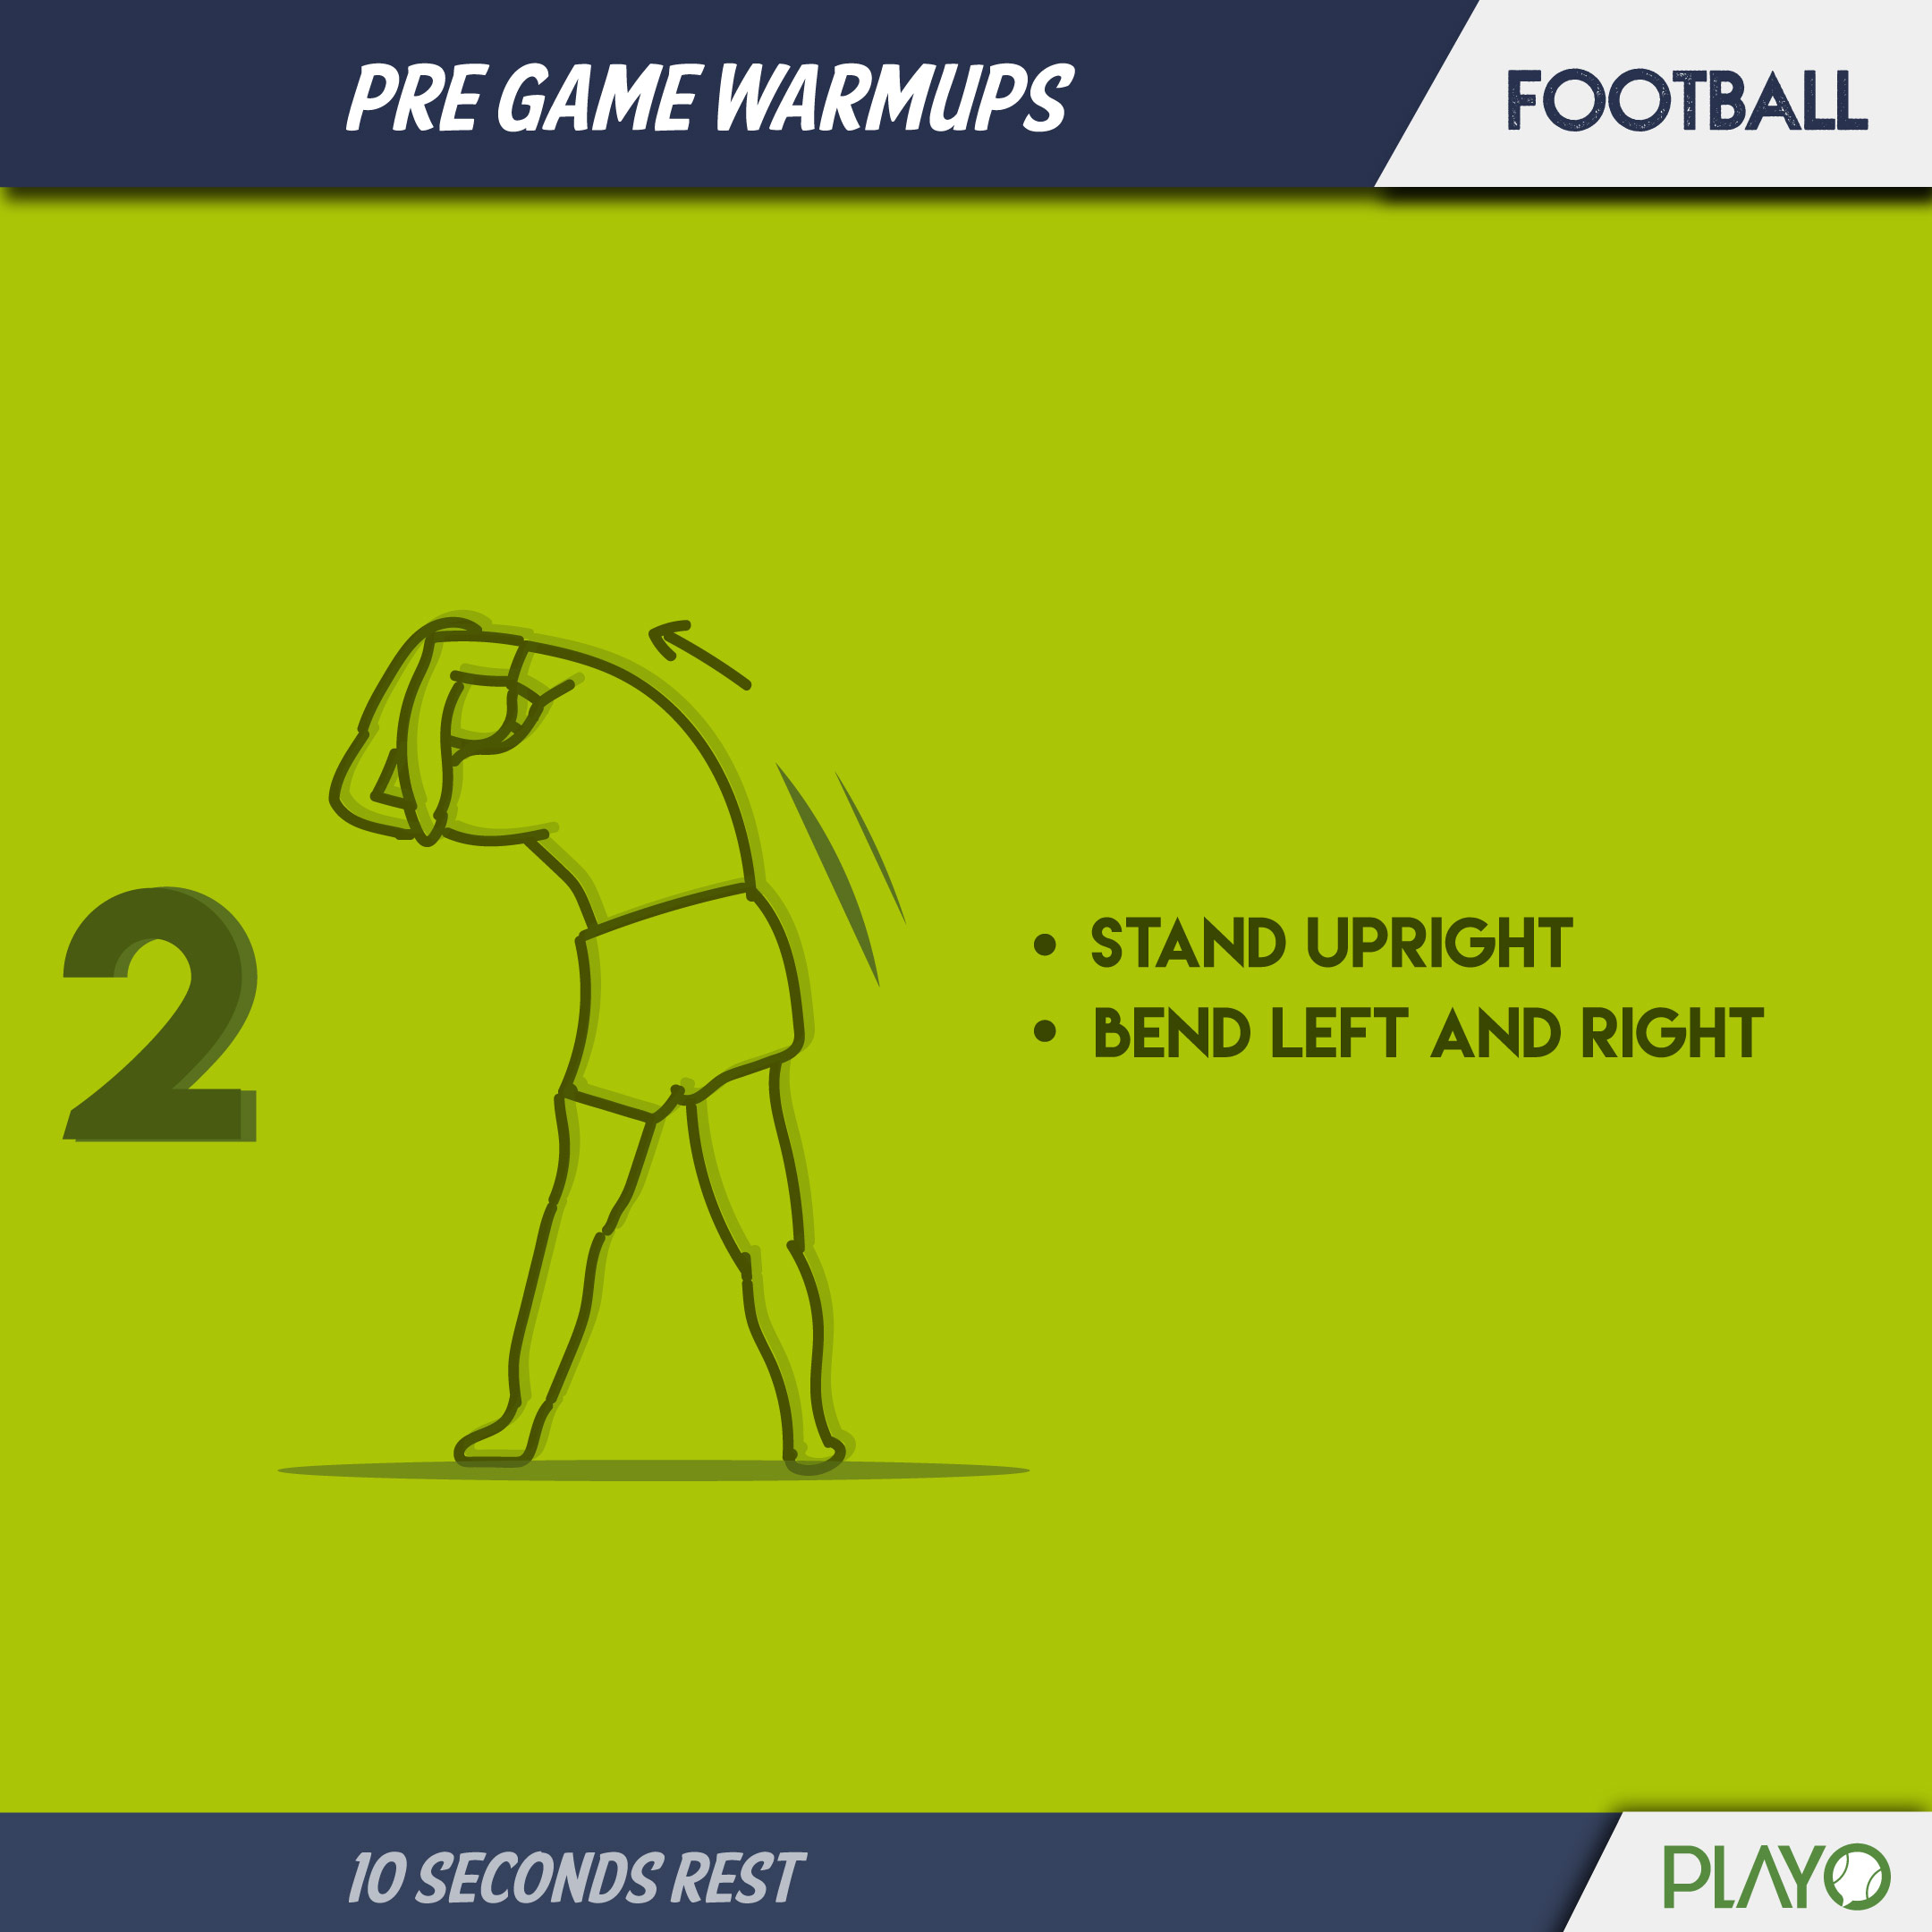 Torso stretch for Warm-up before Football